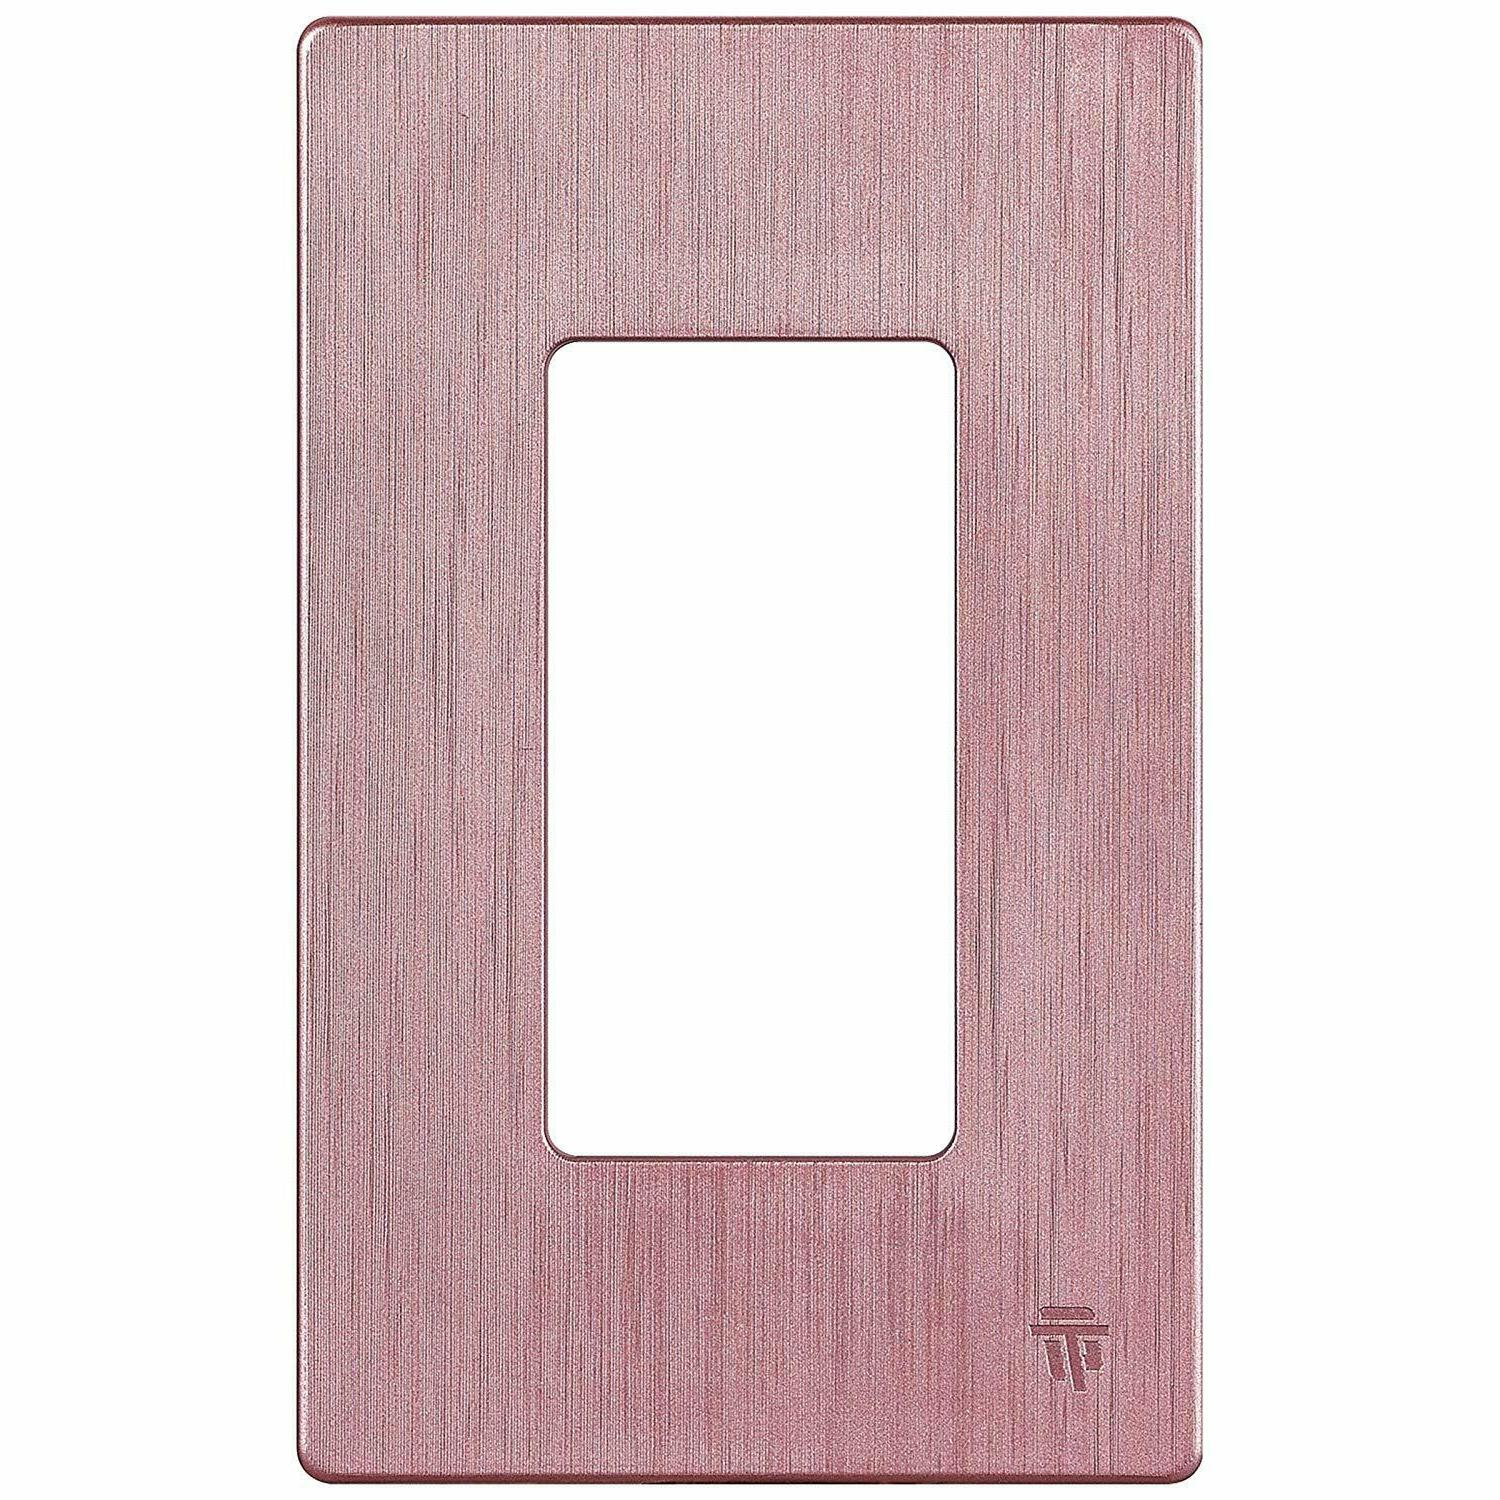 ENERLITES Screwless Decorator Wall Plate Outlet Cover Rose G